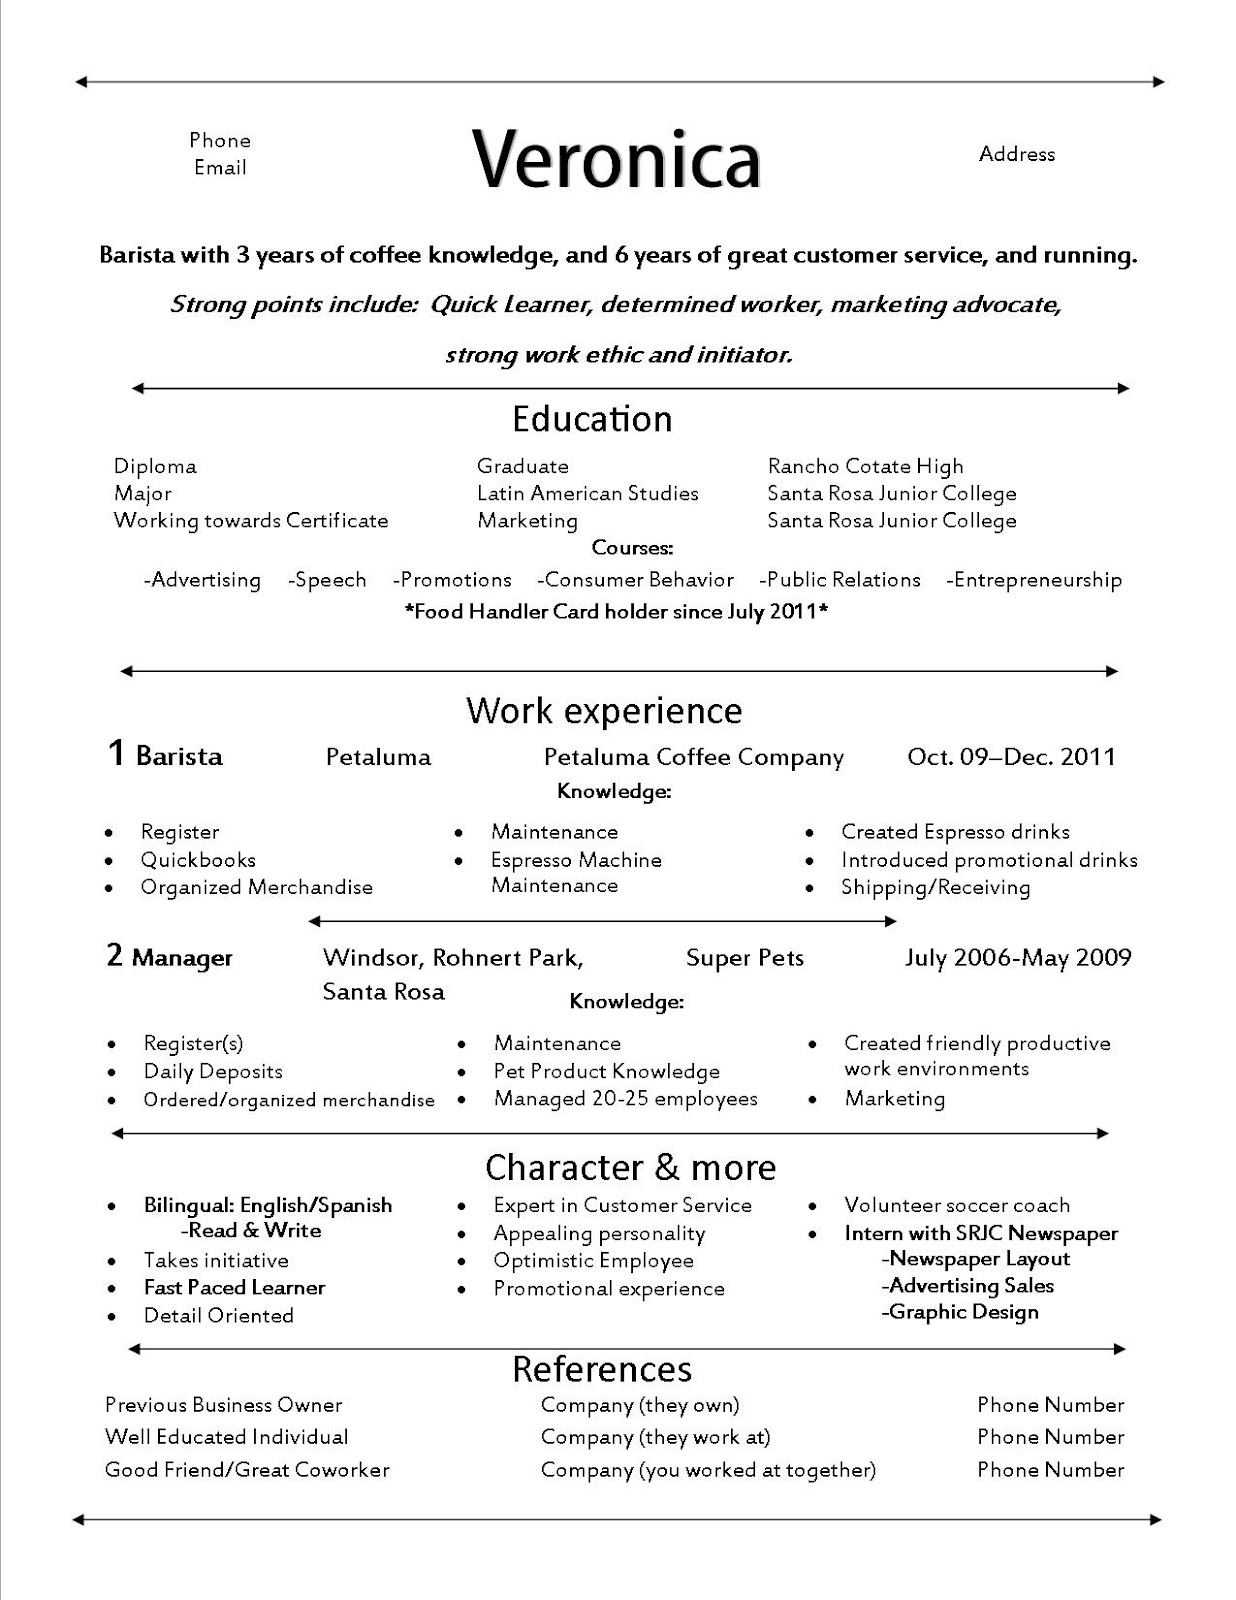 How To Write A Resume That Stands Out My Pathway To A Master 39s Degree Make Your Resume Stand Out